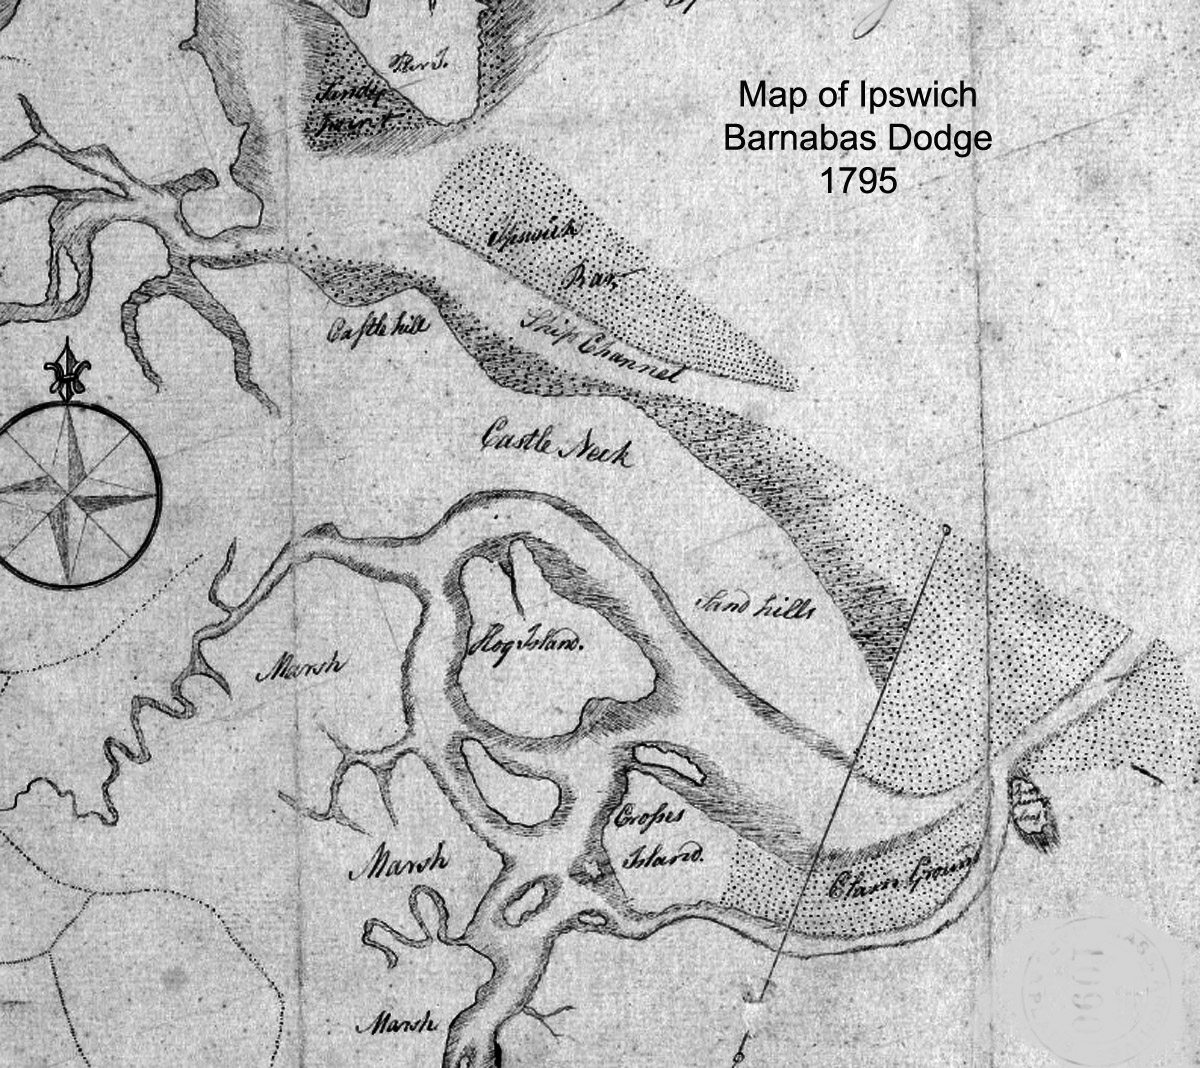 Castle Neck map Section from the 1795 map of Ipswich by Barnabas Dodge.